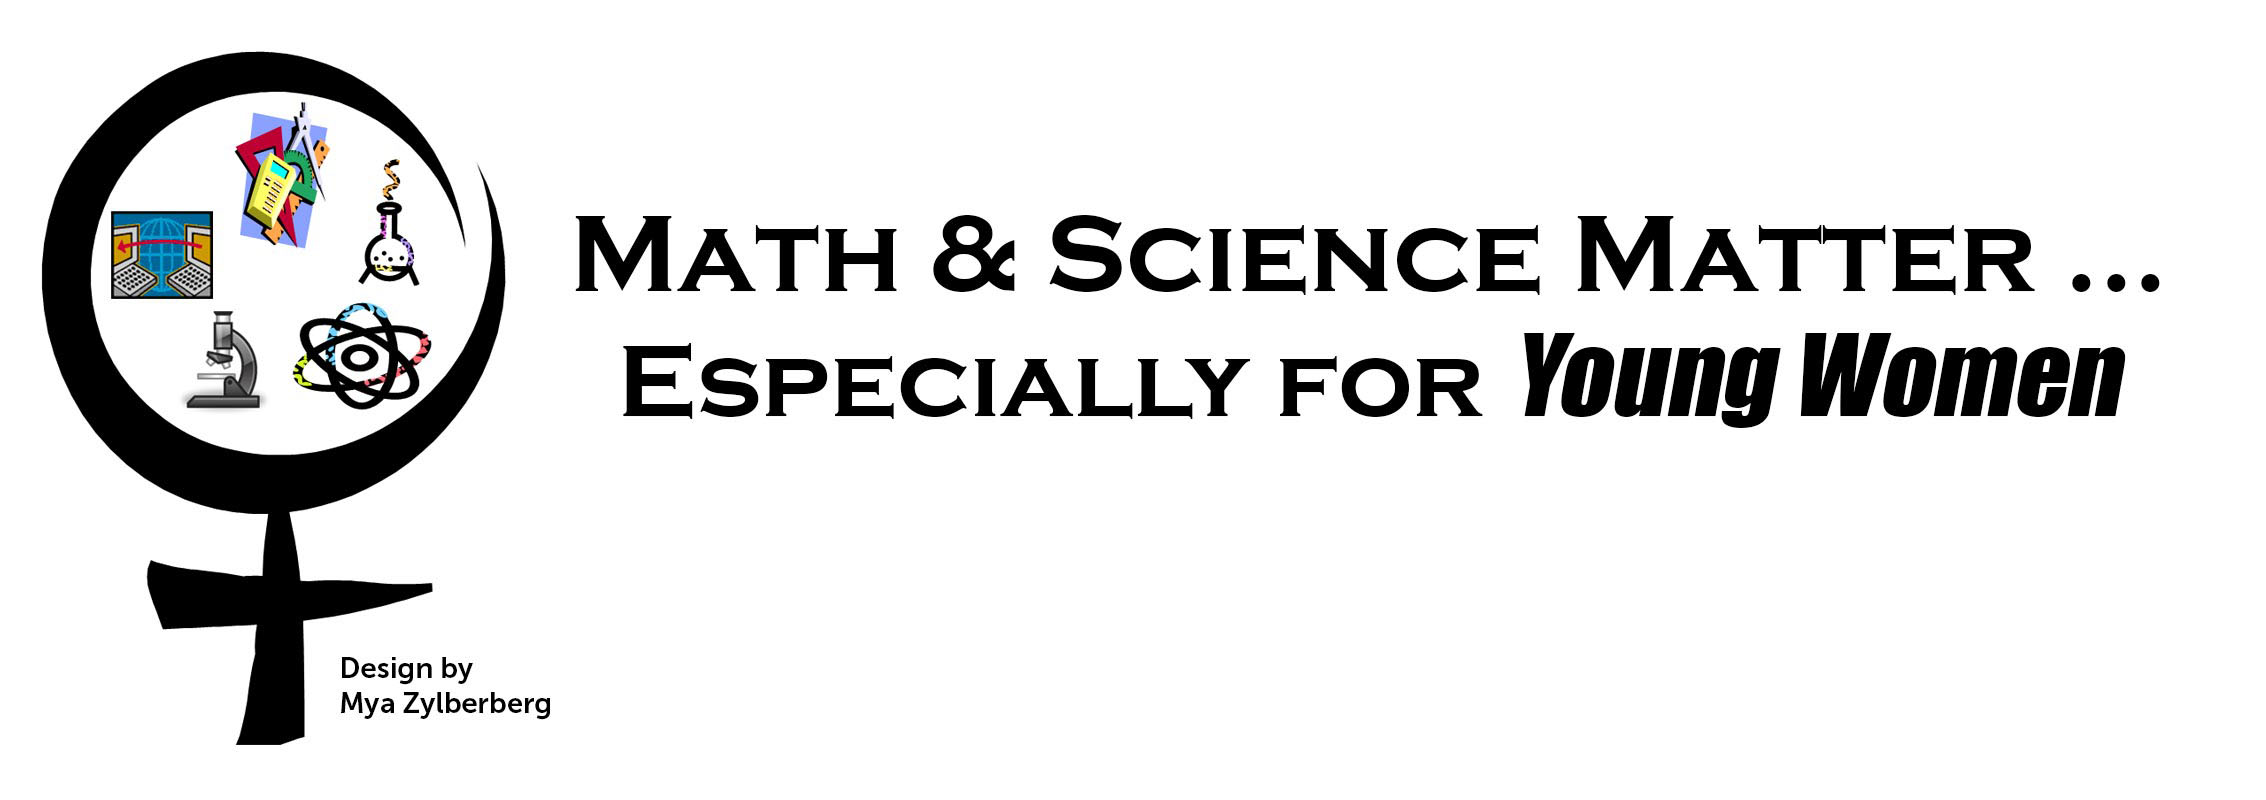 math and science matter logo